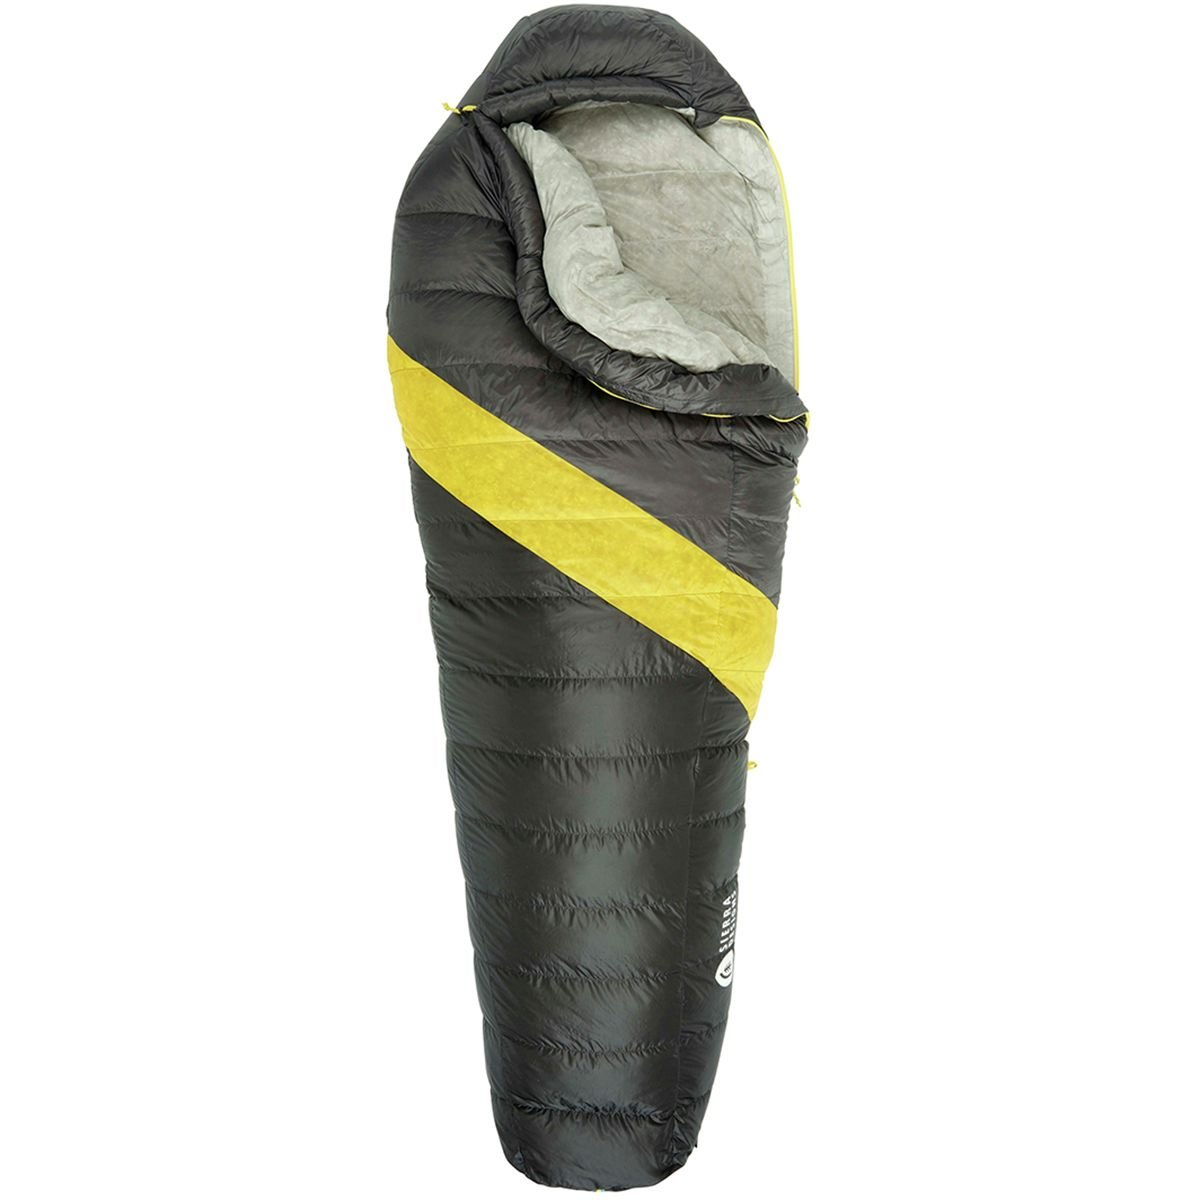 An image of Sierra Design Nitro 800 Nylon Ripstop Sleeping Bag